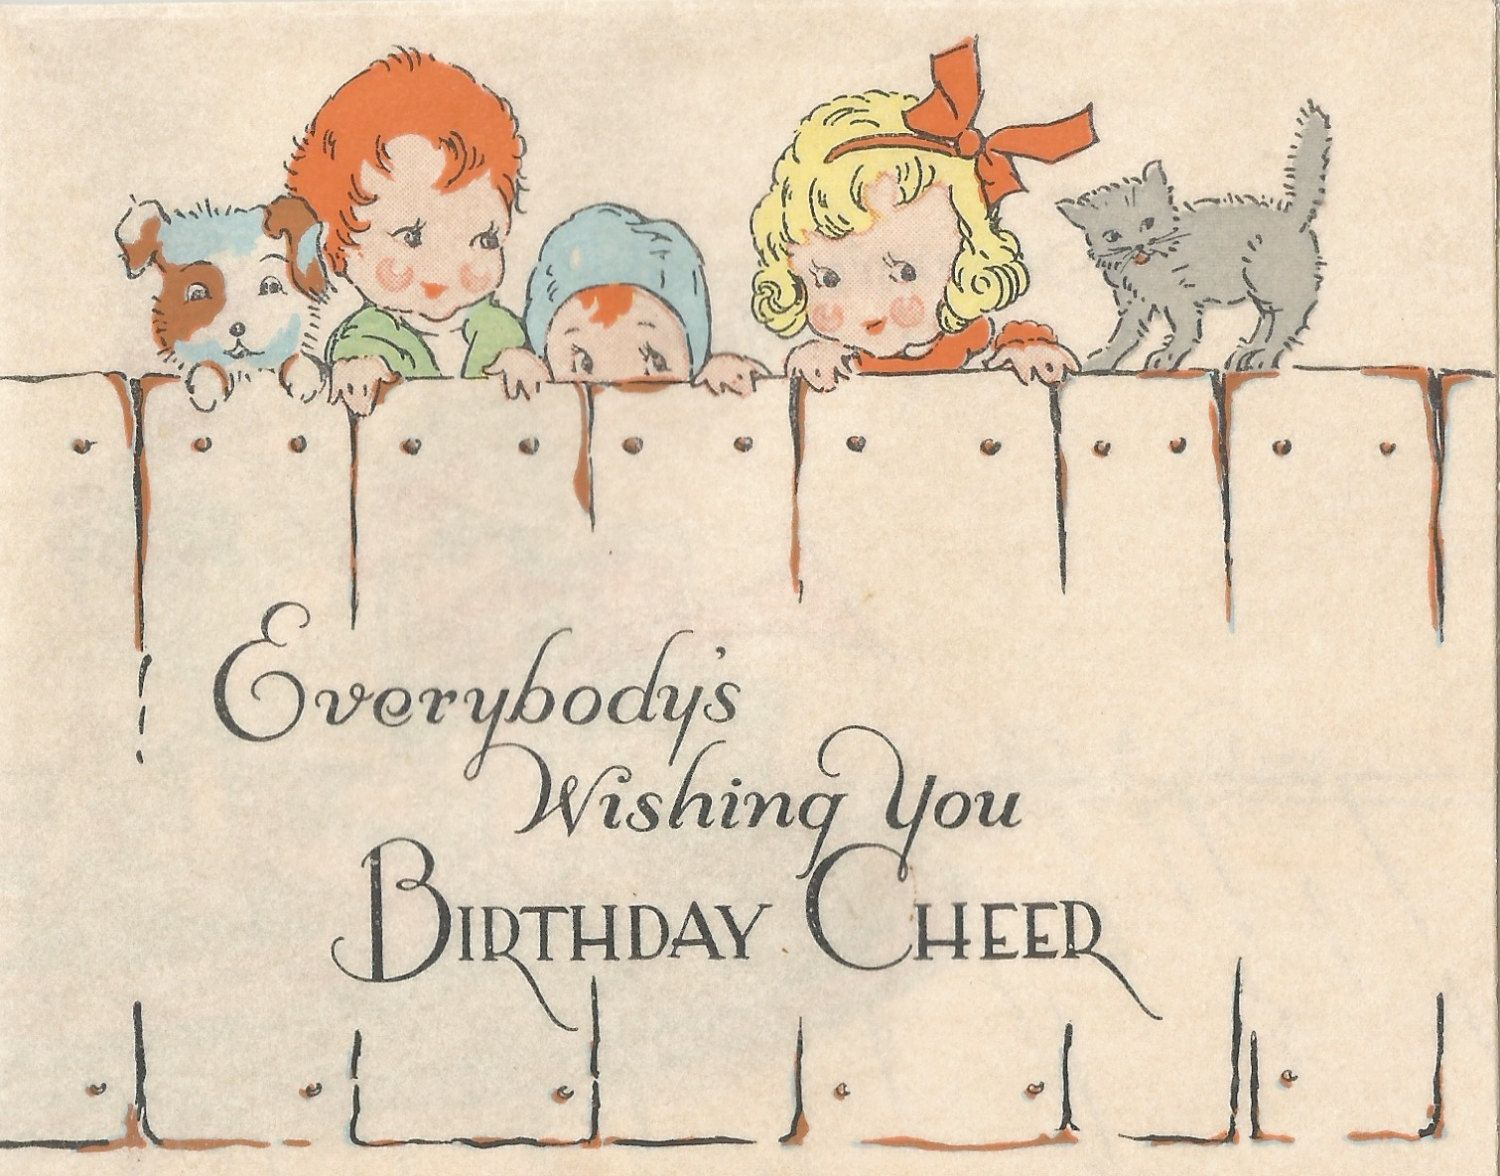 Vintage Art Deco birthday card children digital download printable image by BigGDesigns on Etsy